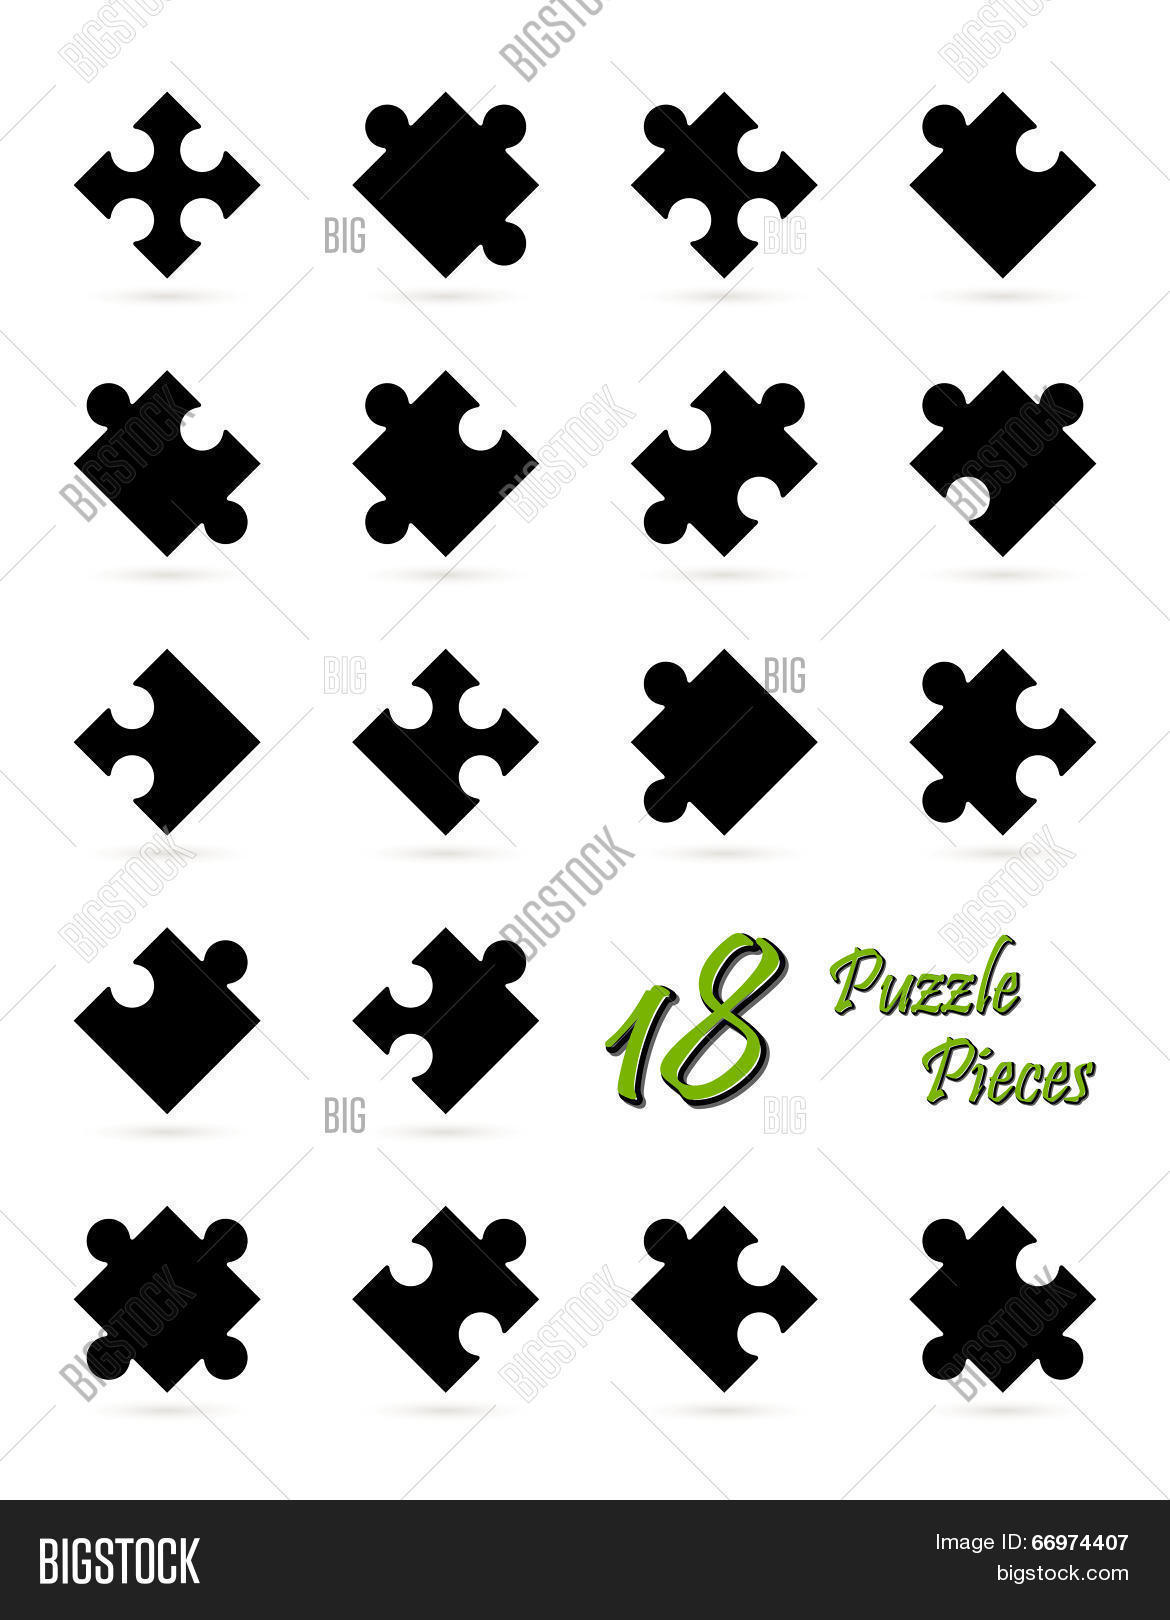 All 18 Puzzle Pieces Vector & Photo (Free Trial) | Bigstock